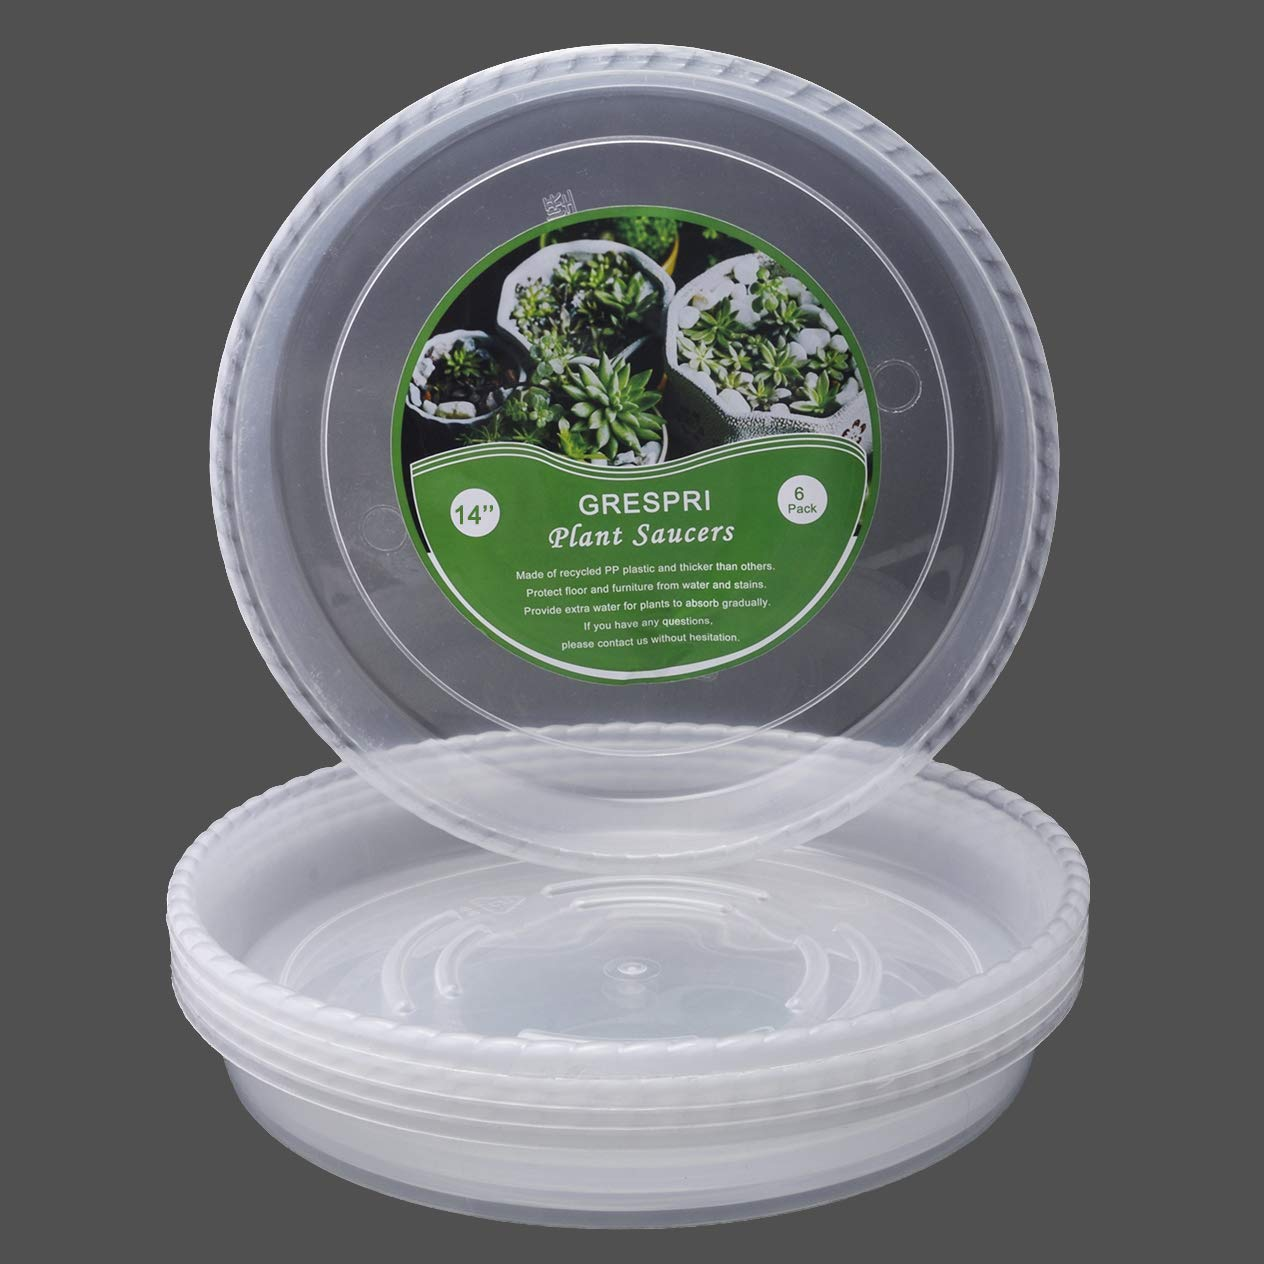 GRENSPRI Clear Plant Saucers in Thick Plastic 6 Packs of Flower Pot Saucers in 14 Inches Round Plant Tray Waterproof for Drips Recycle Indoor or Balcony (14 inches,6packs) by GRENSPRI